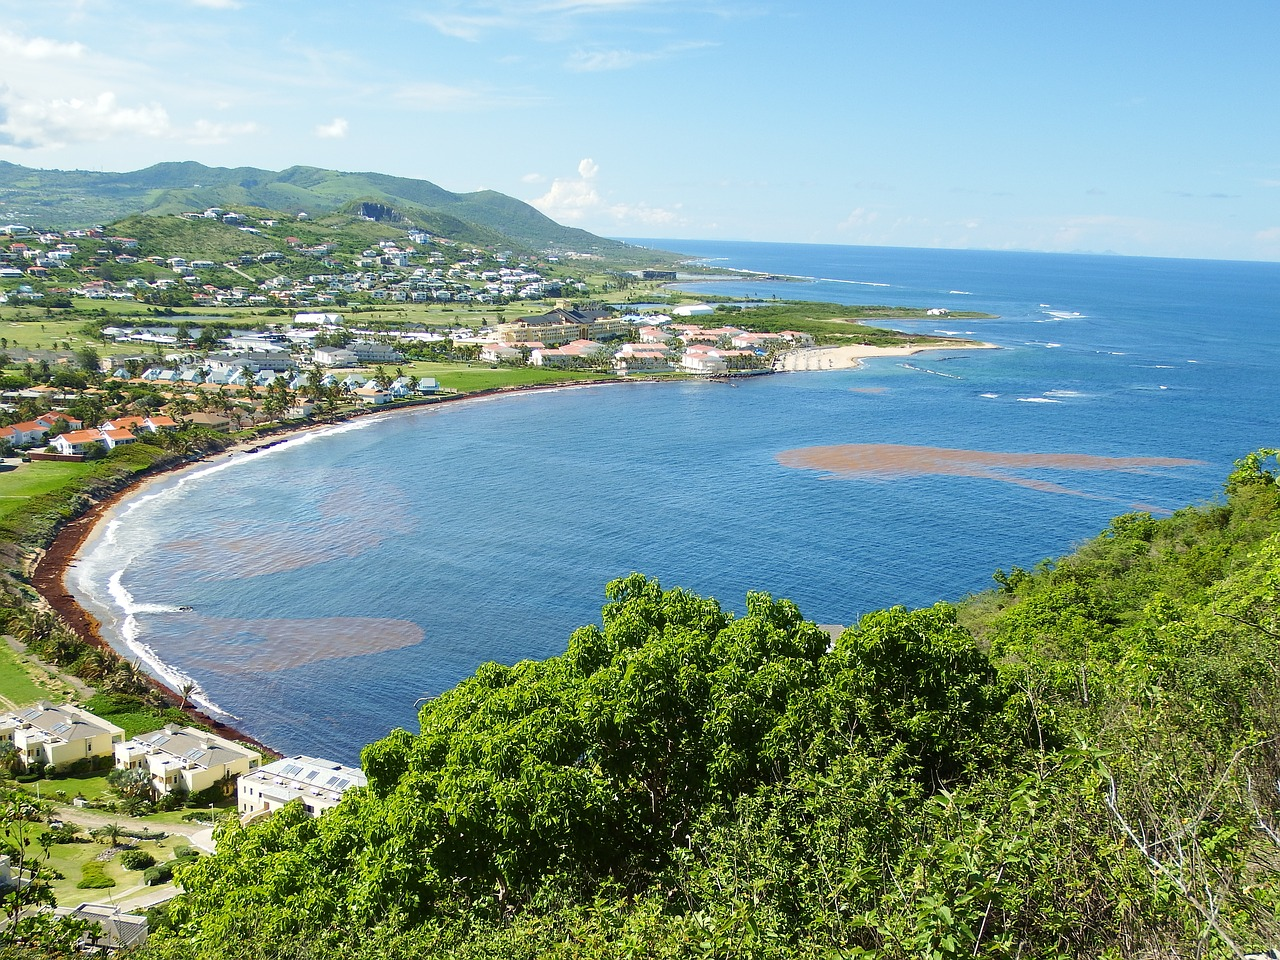 Download free photo of Saint, kitts, caribbean, tropical, island - from  needpix.com